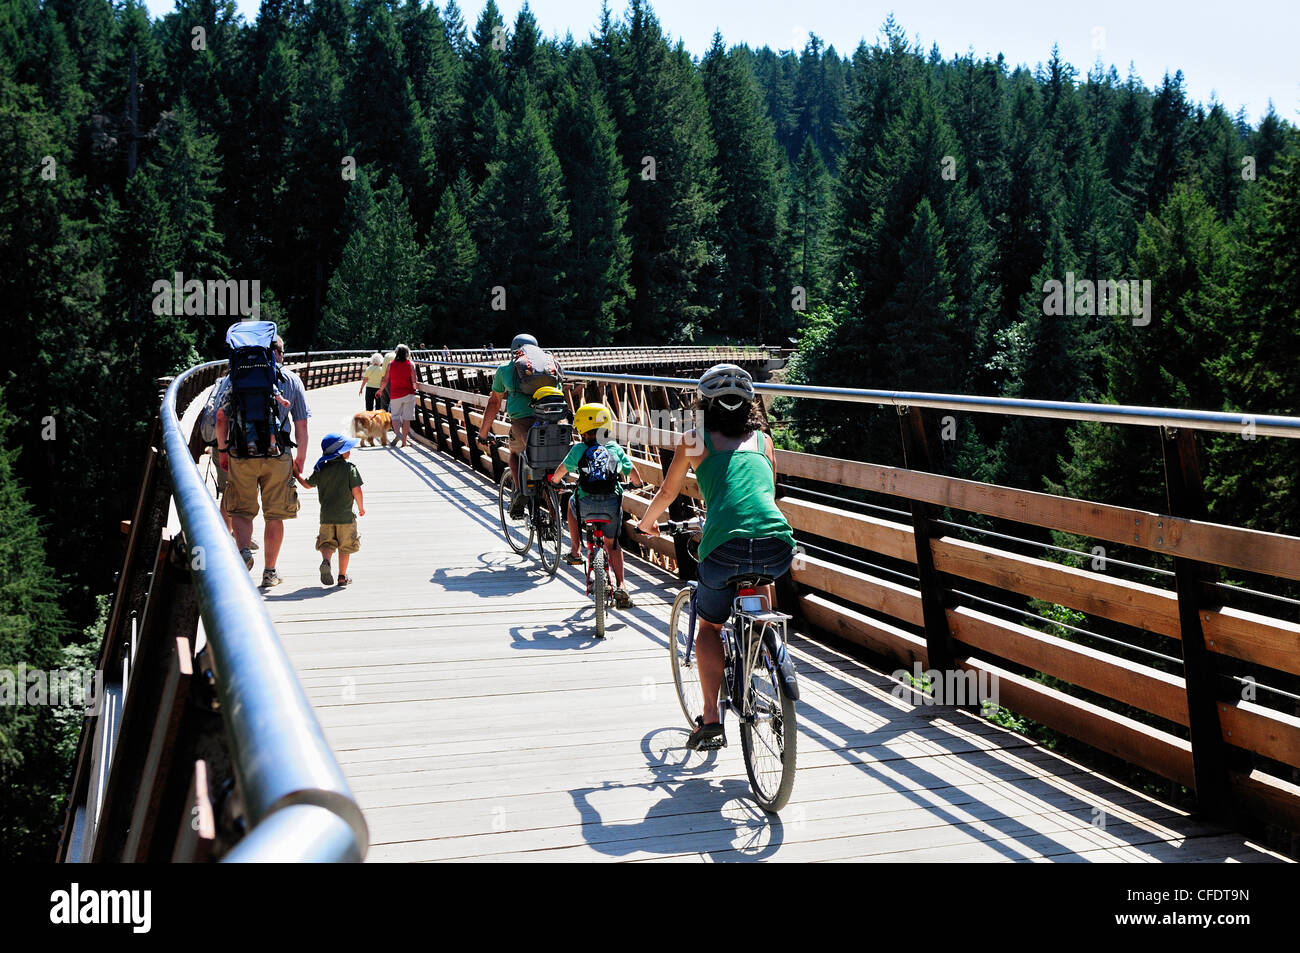 Cyclists and hikers crossing the newly refurbished Kinsol Trestle in the Shawnigan Lake, British Columbia, Canada. - Stock Image